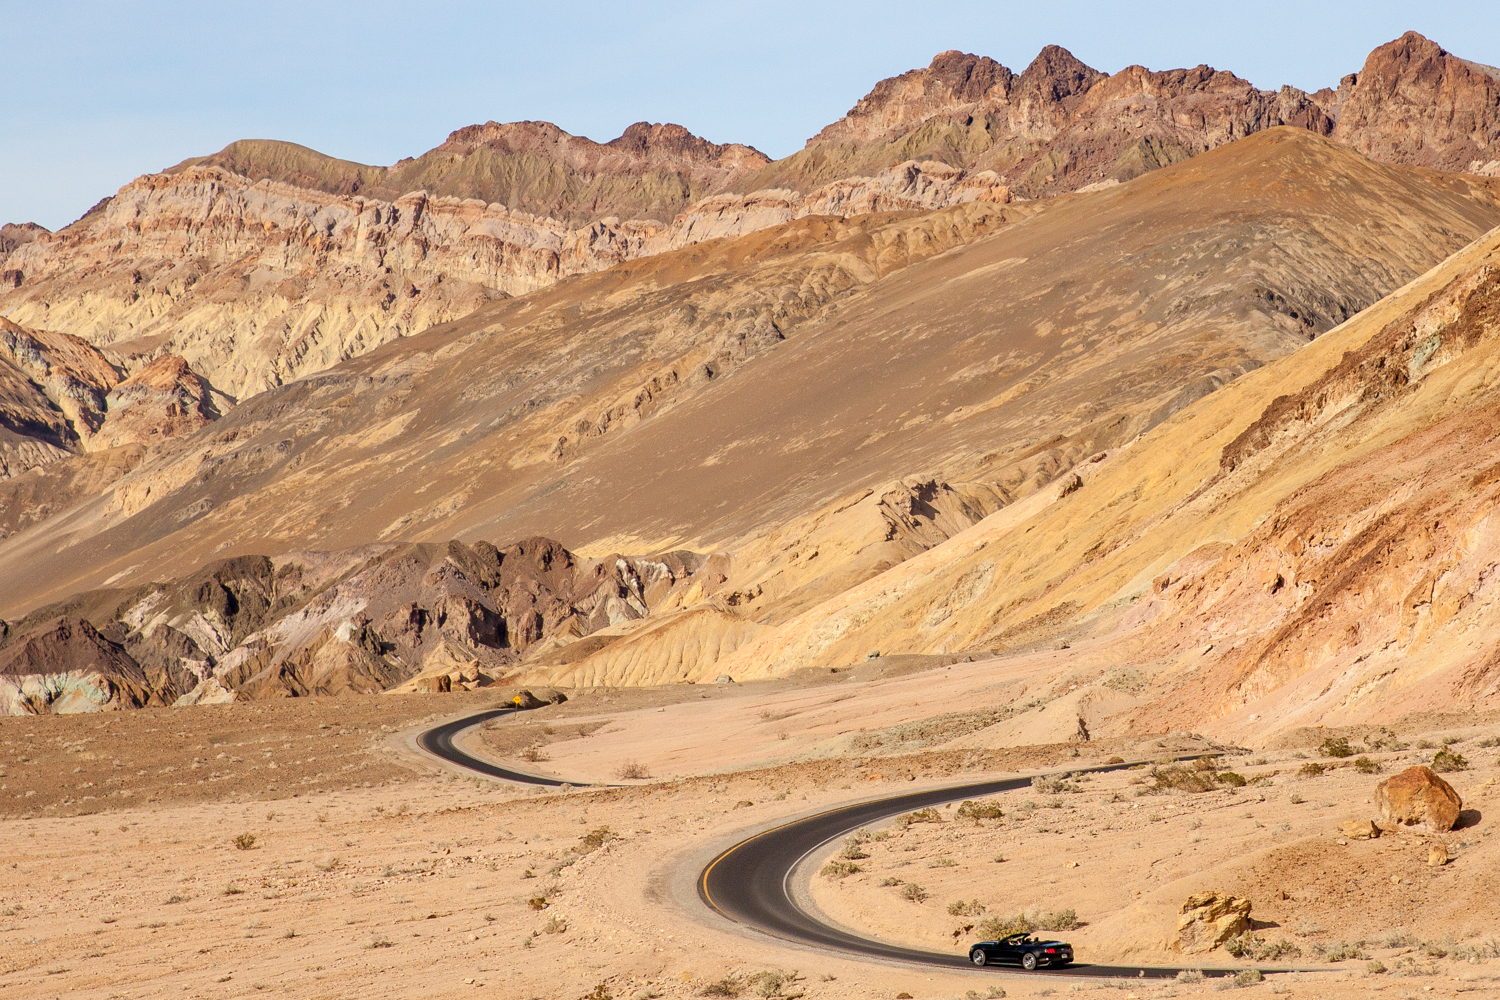 Helynn_Ospina_Travel_Death_Valley_California_01749-18.jpg